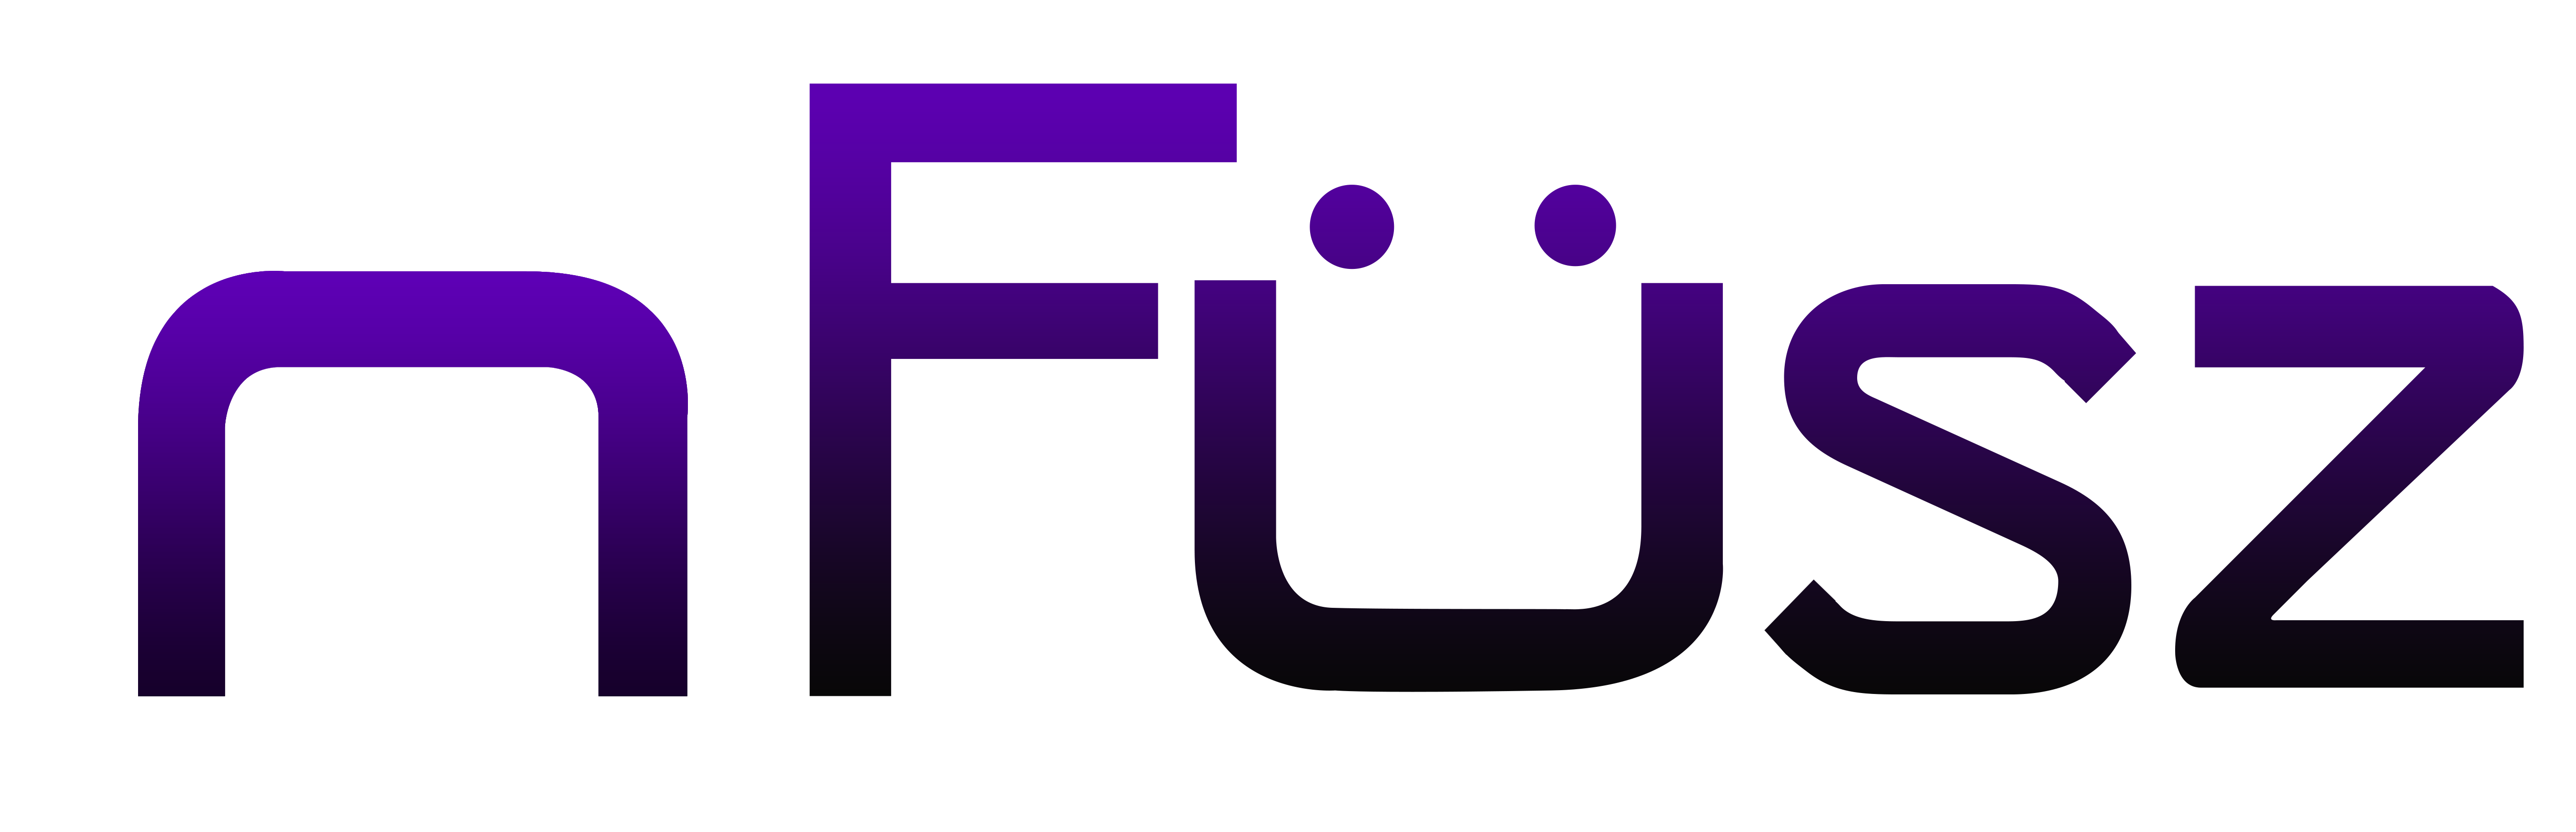 1532432466_nFUSZ-LOGO-OFFICIAL-Final.png